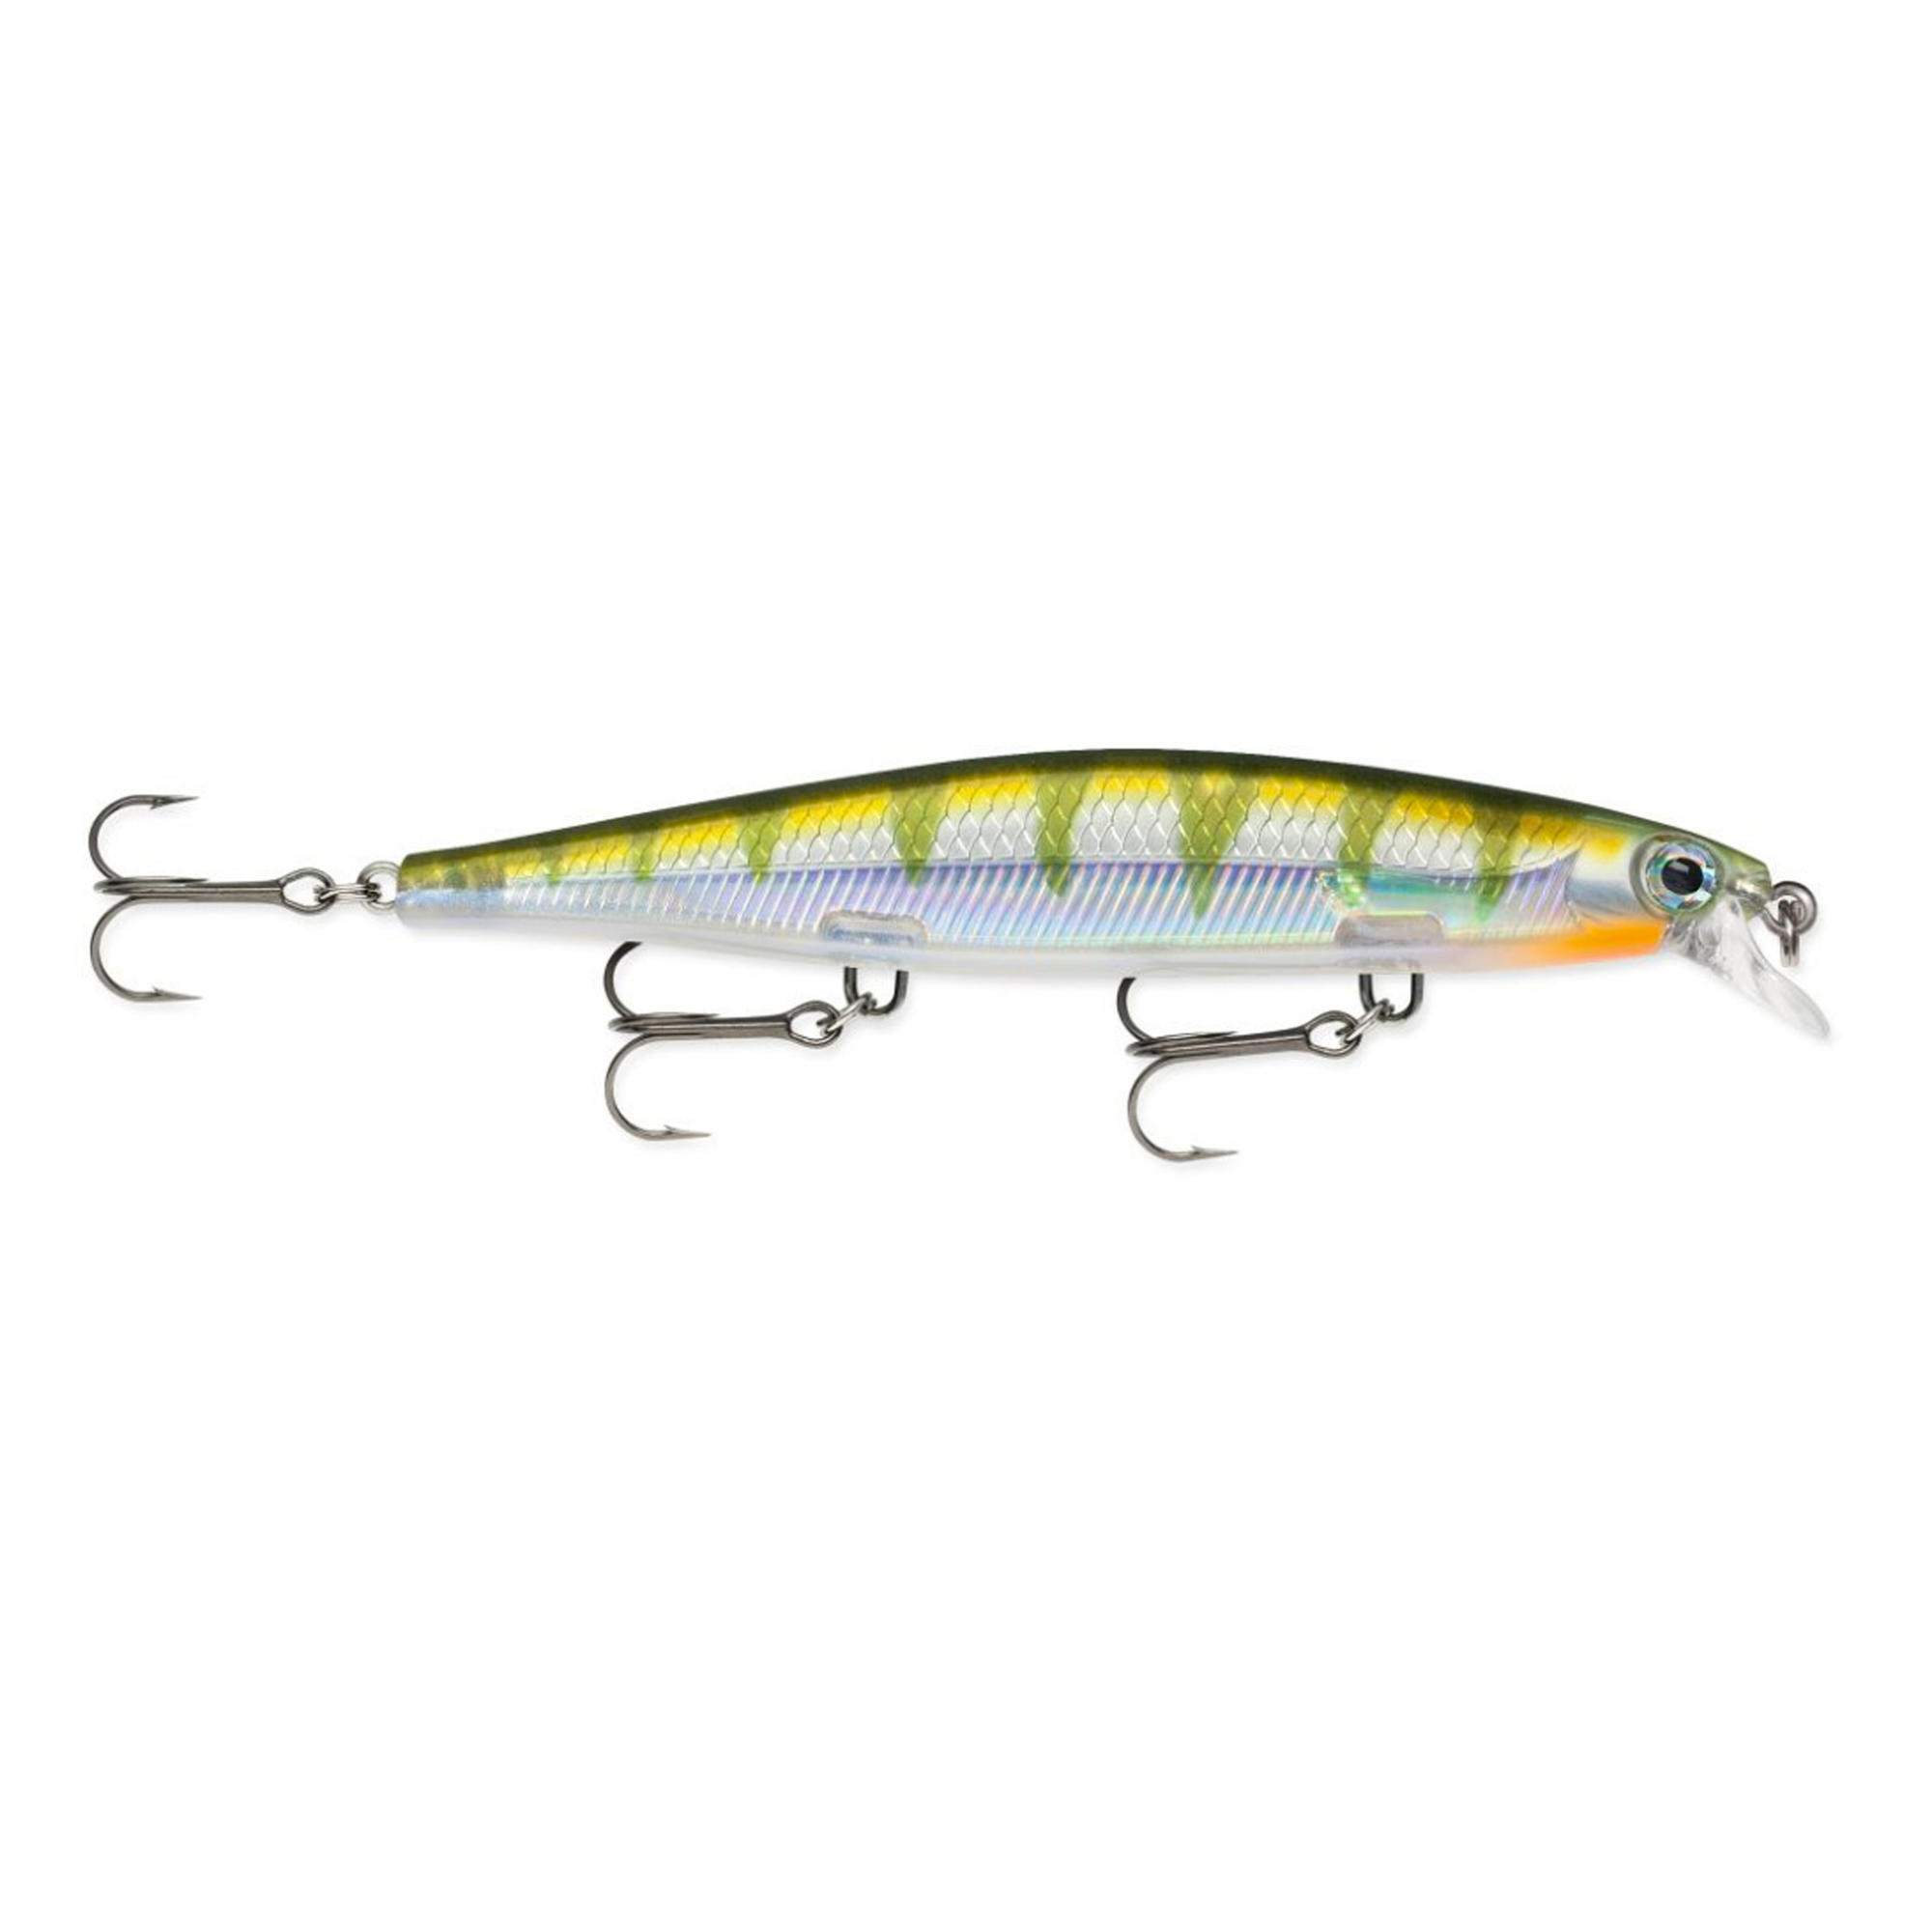 Rapala Kunstaas hengelsport Shadow Rap yellow perch